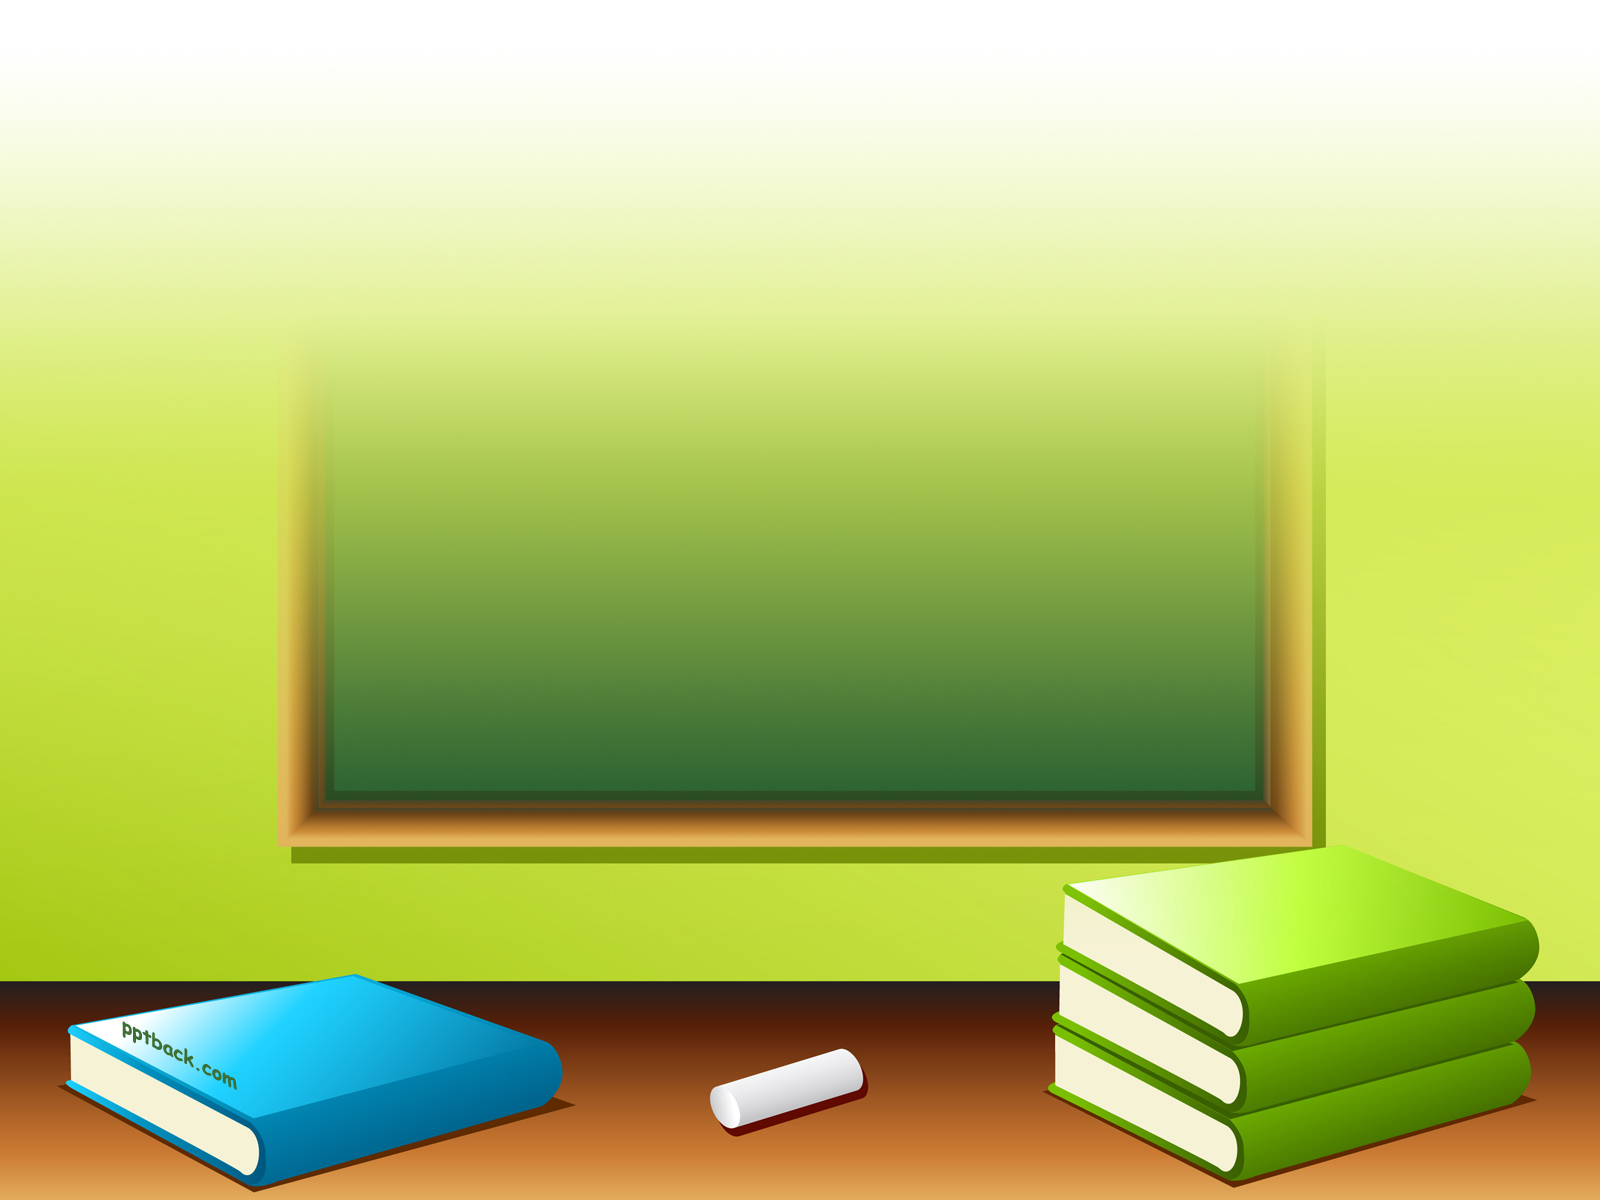 Back to school design background with primary subject matter school - Back To School Book Pencil Eraser Background Wallpaper For